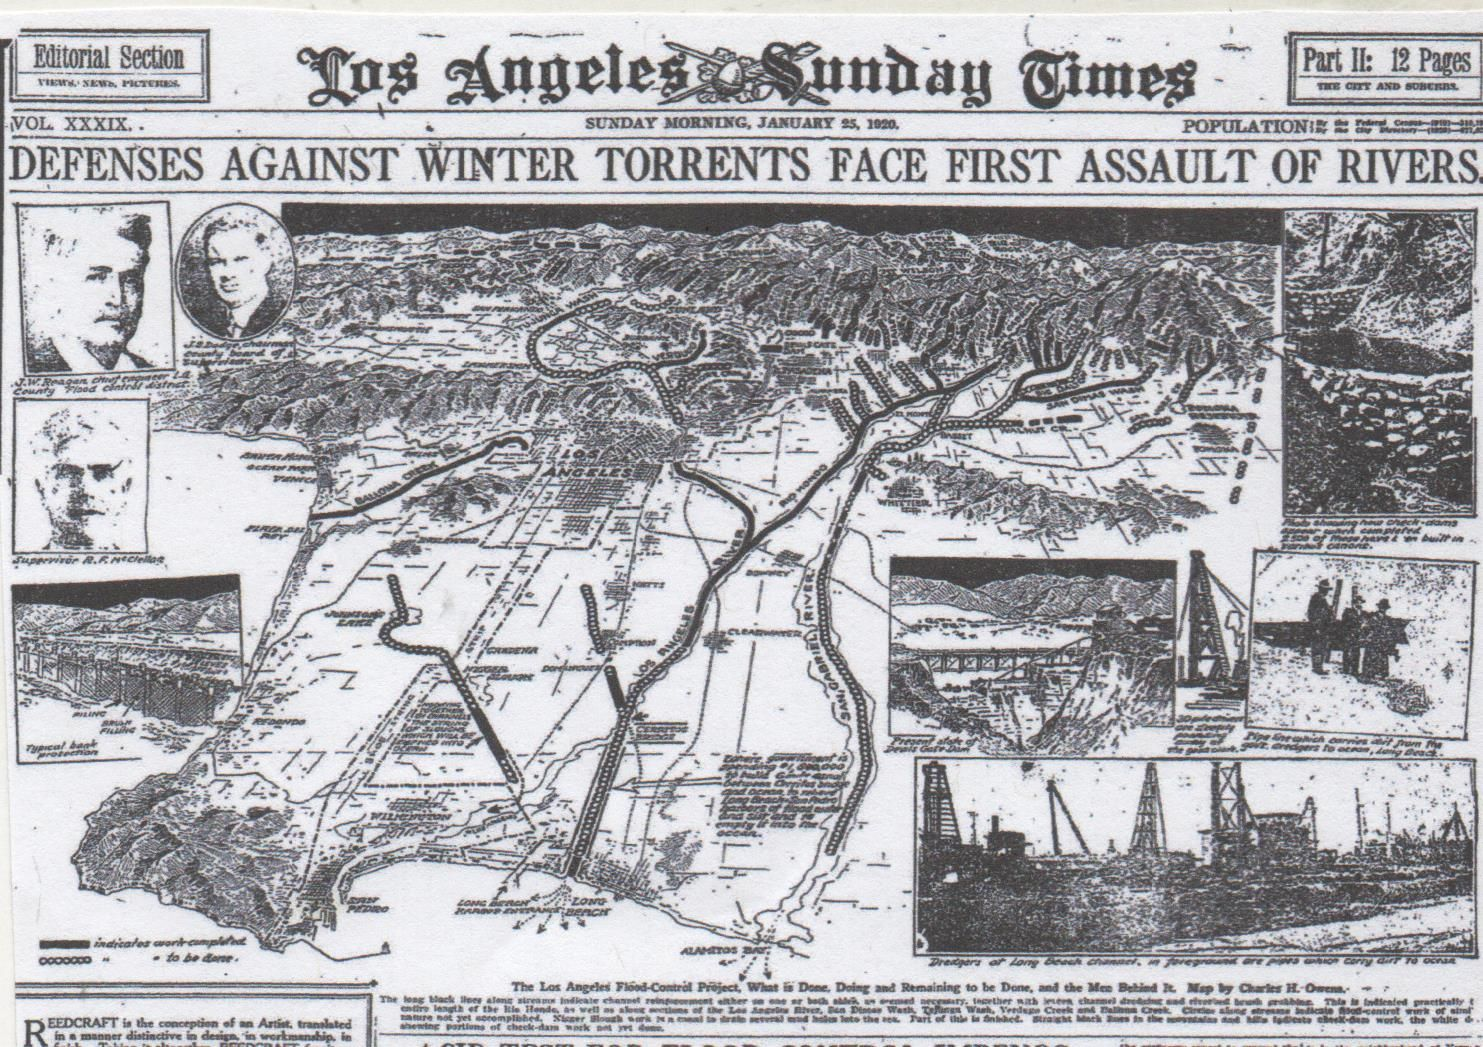 Old L.A. Times article.